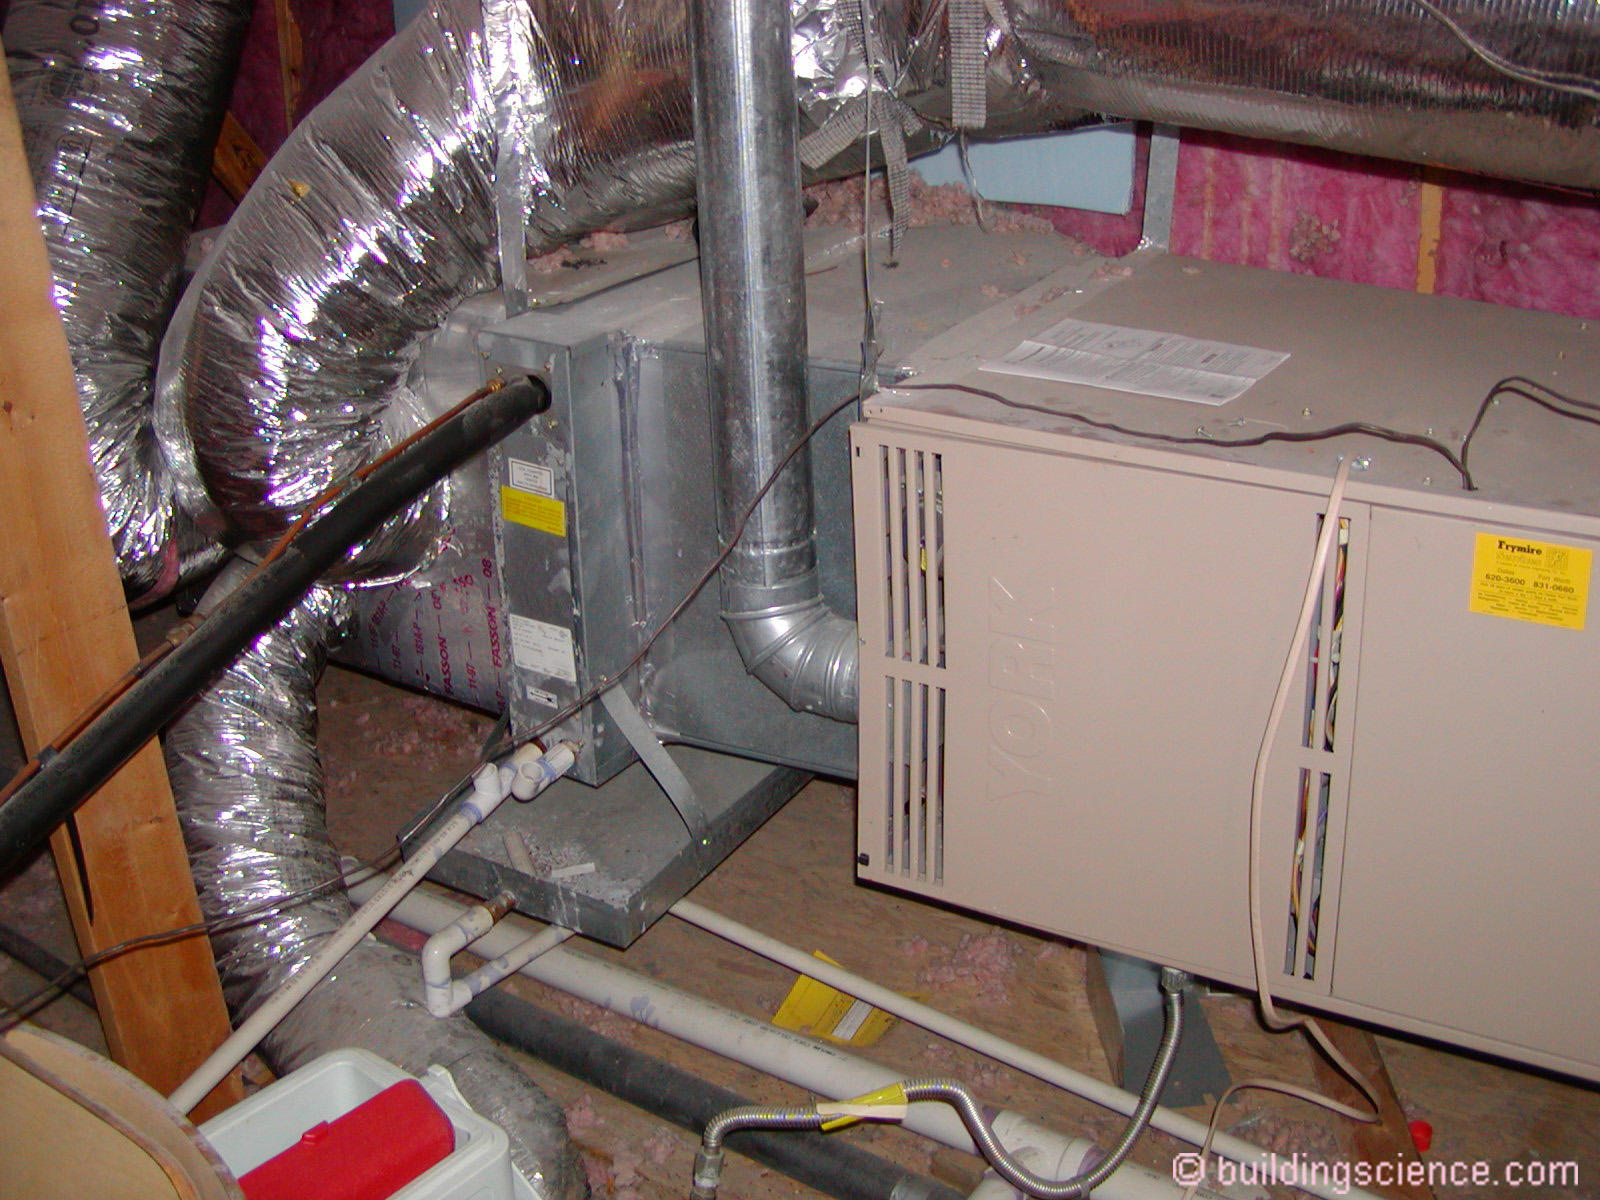 photograph 2 attic air conditioner and furnace standard vented combustion gas furnace with a single stage air conditioner located in a south texas attic  [ 1600 x 1200 Pixel ]